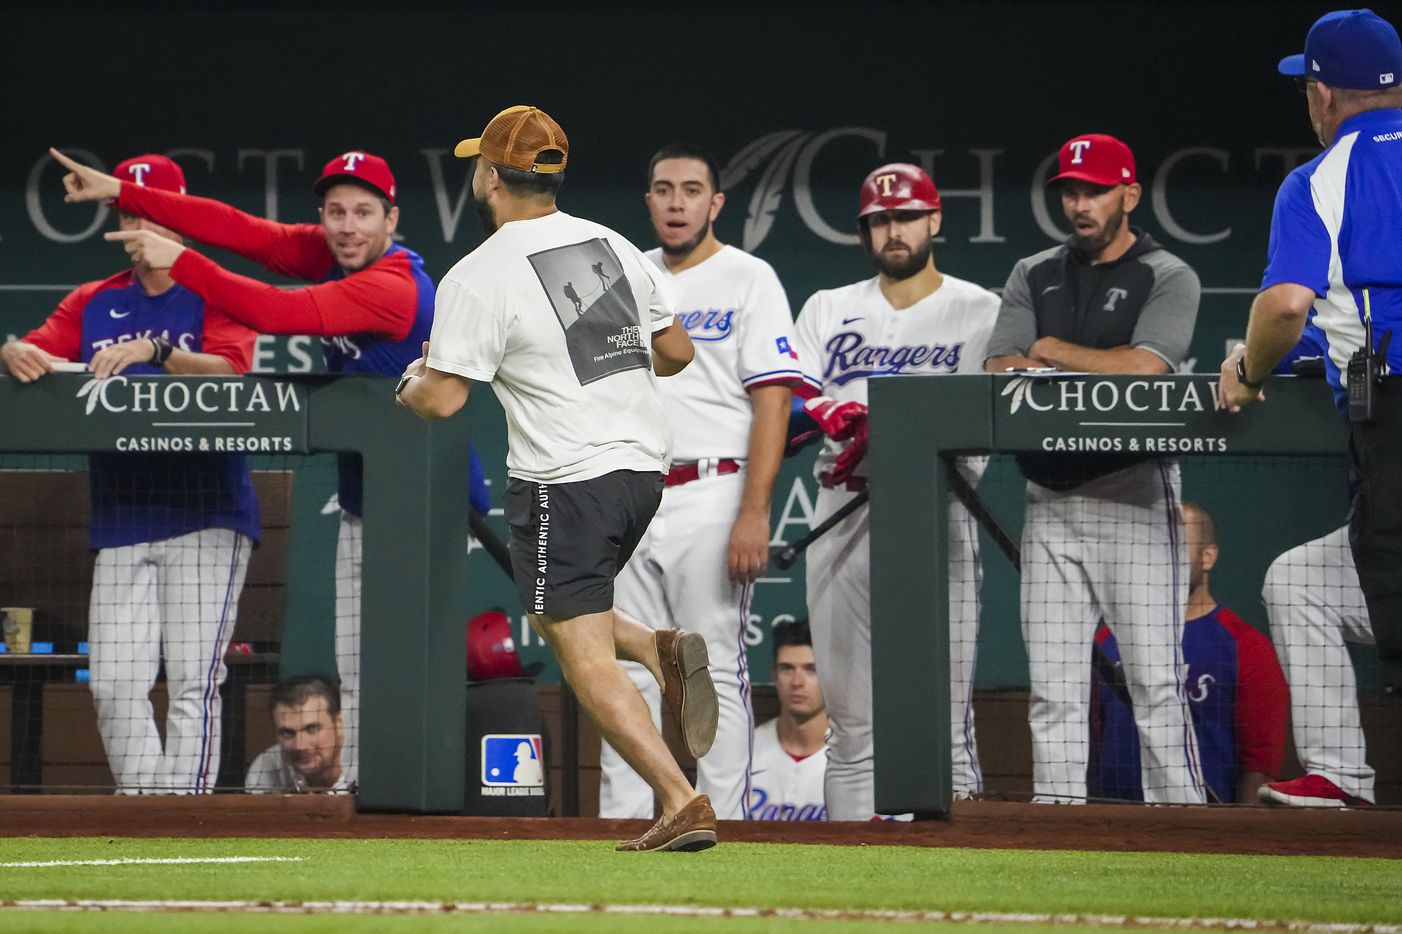 Security guards give chase to a fan who ran out on the field as the Texas Rangers dugout looks on during the eighth inning against the Detroit Tigers at Globe Life Field on Tuesday, July 6, 2021.